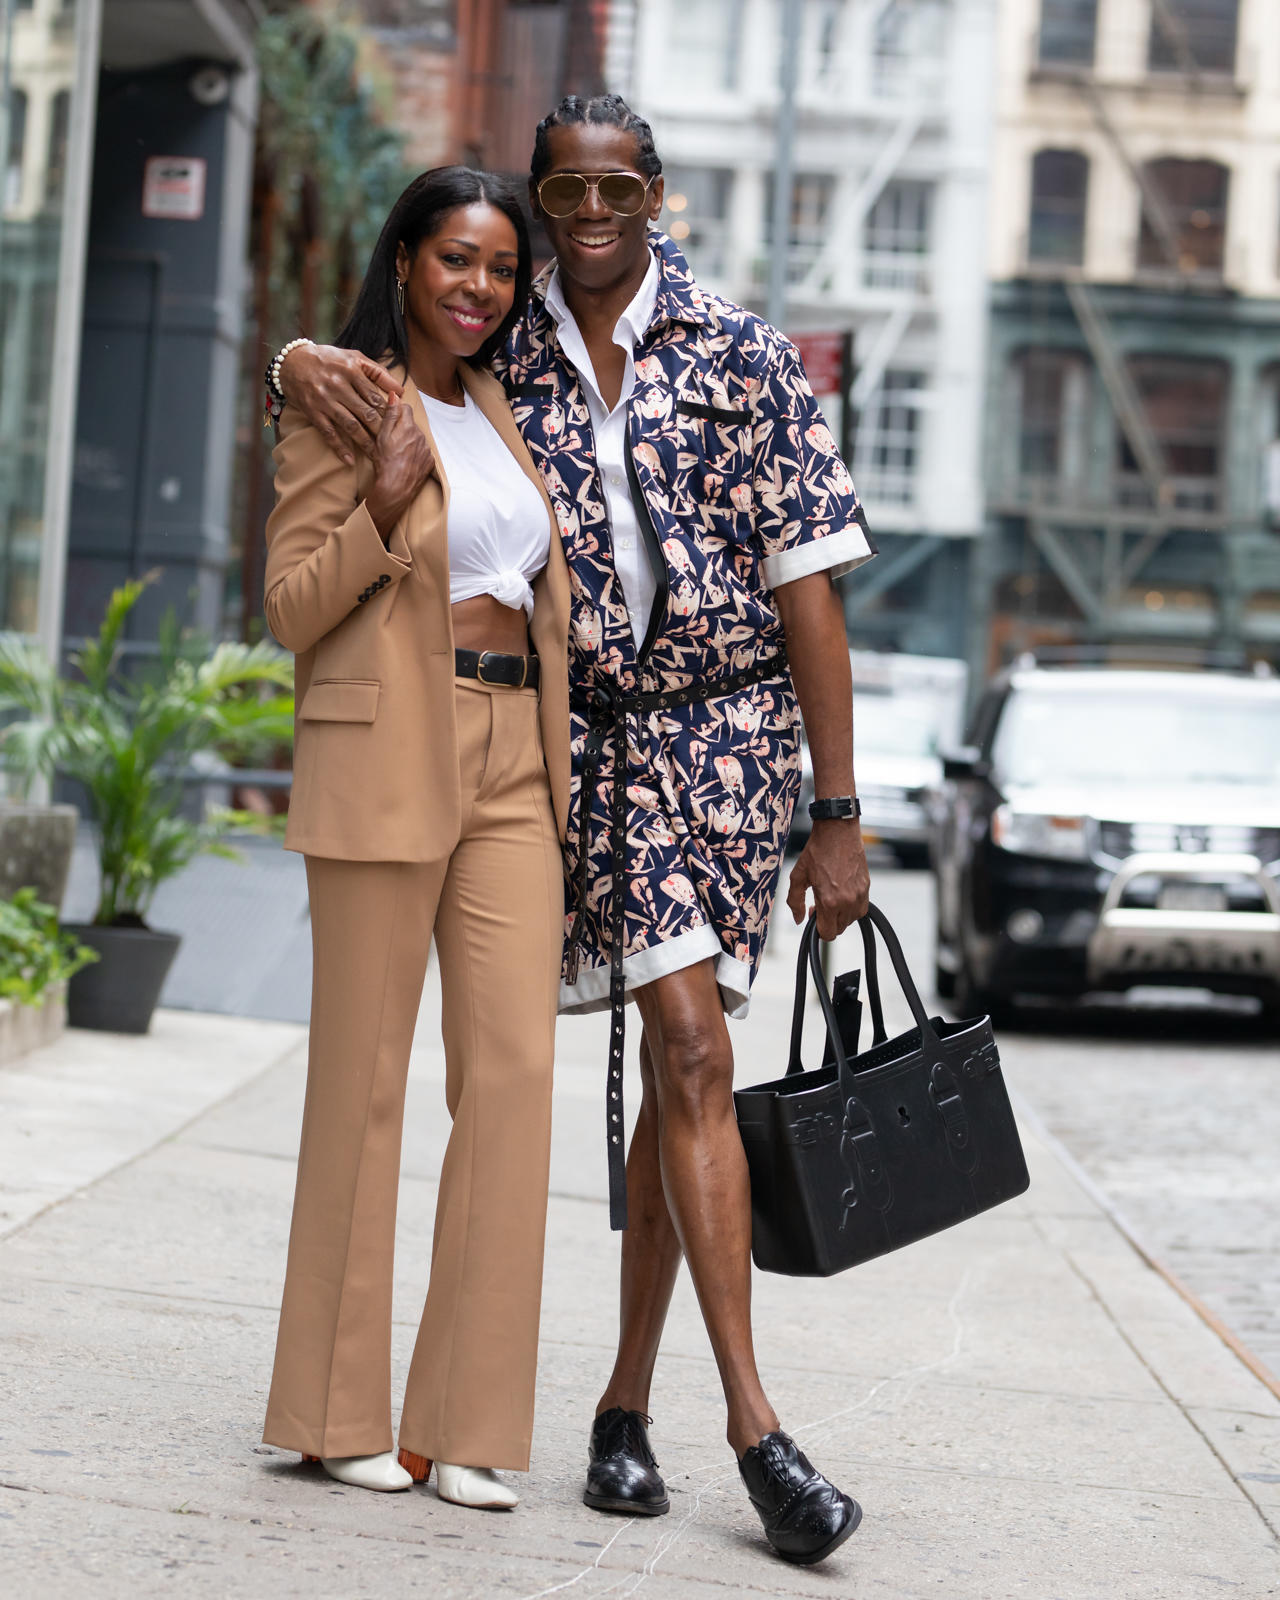 Dominique Baker and Miss Jay Alexander in Soho, NYC